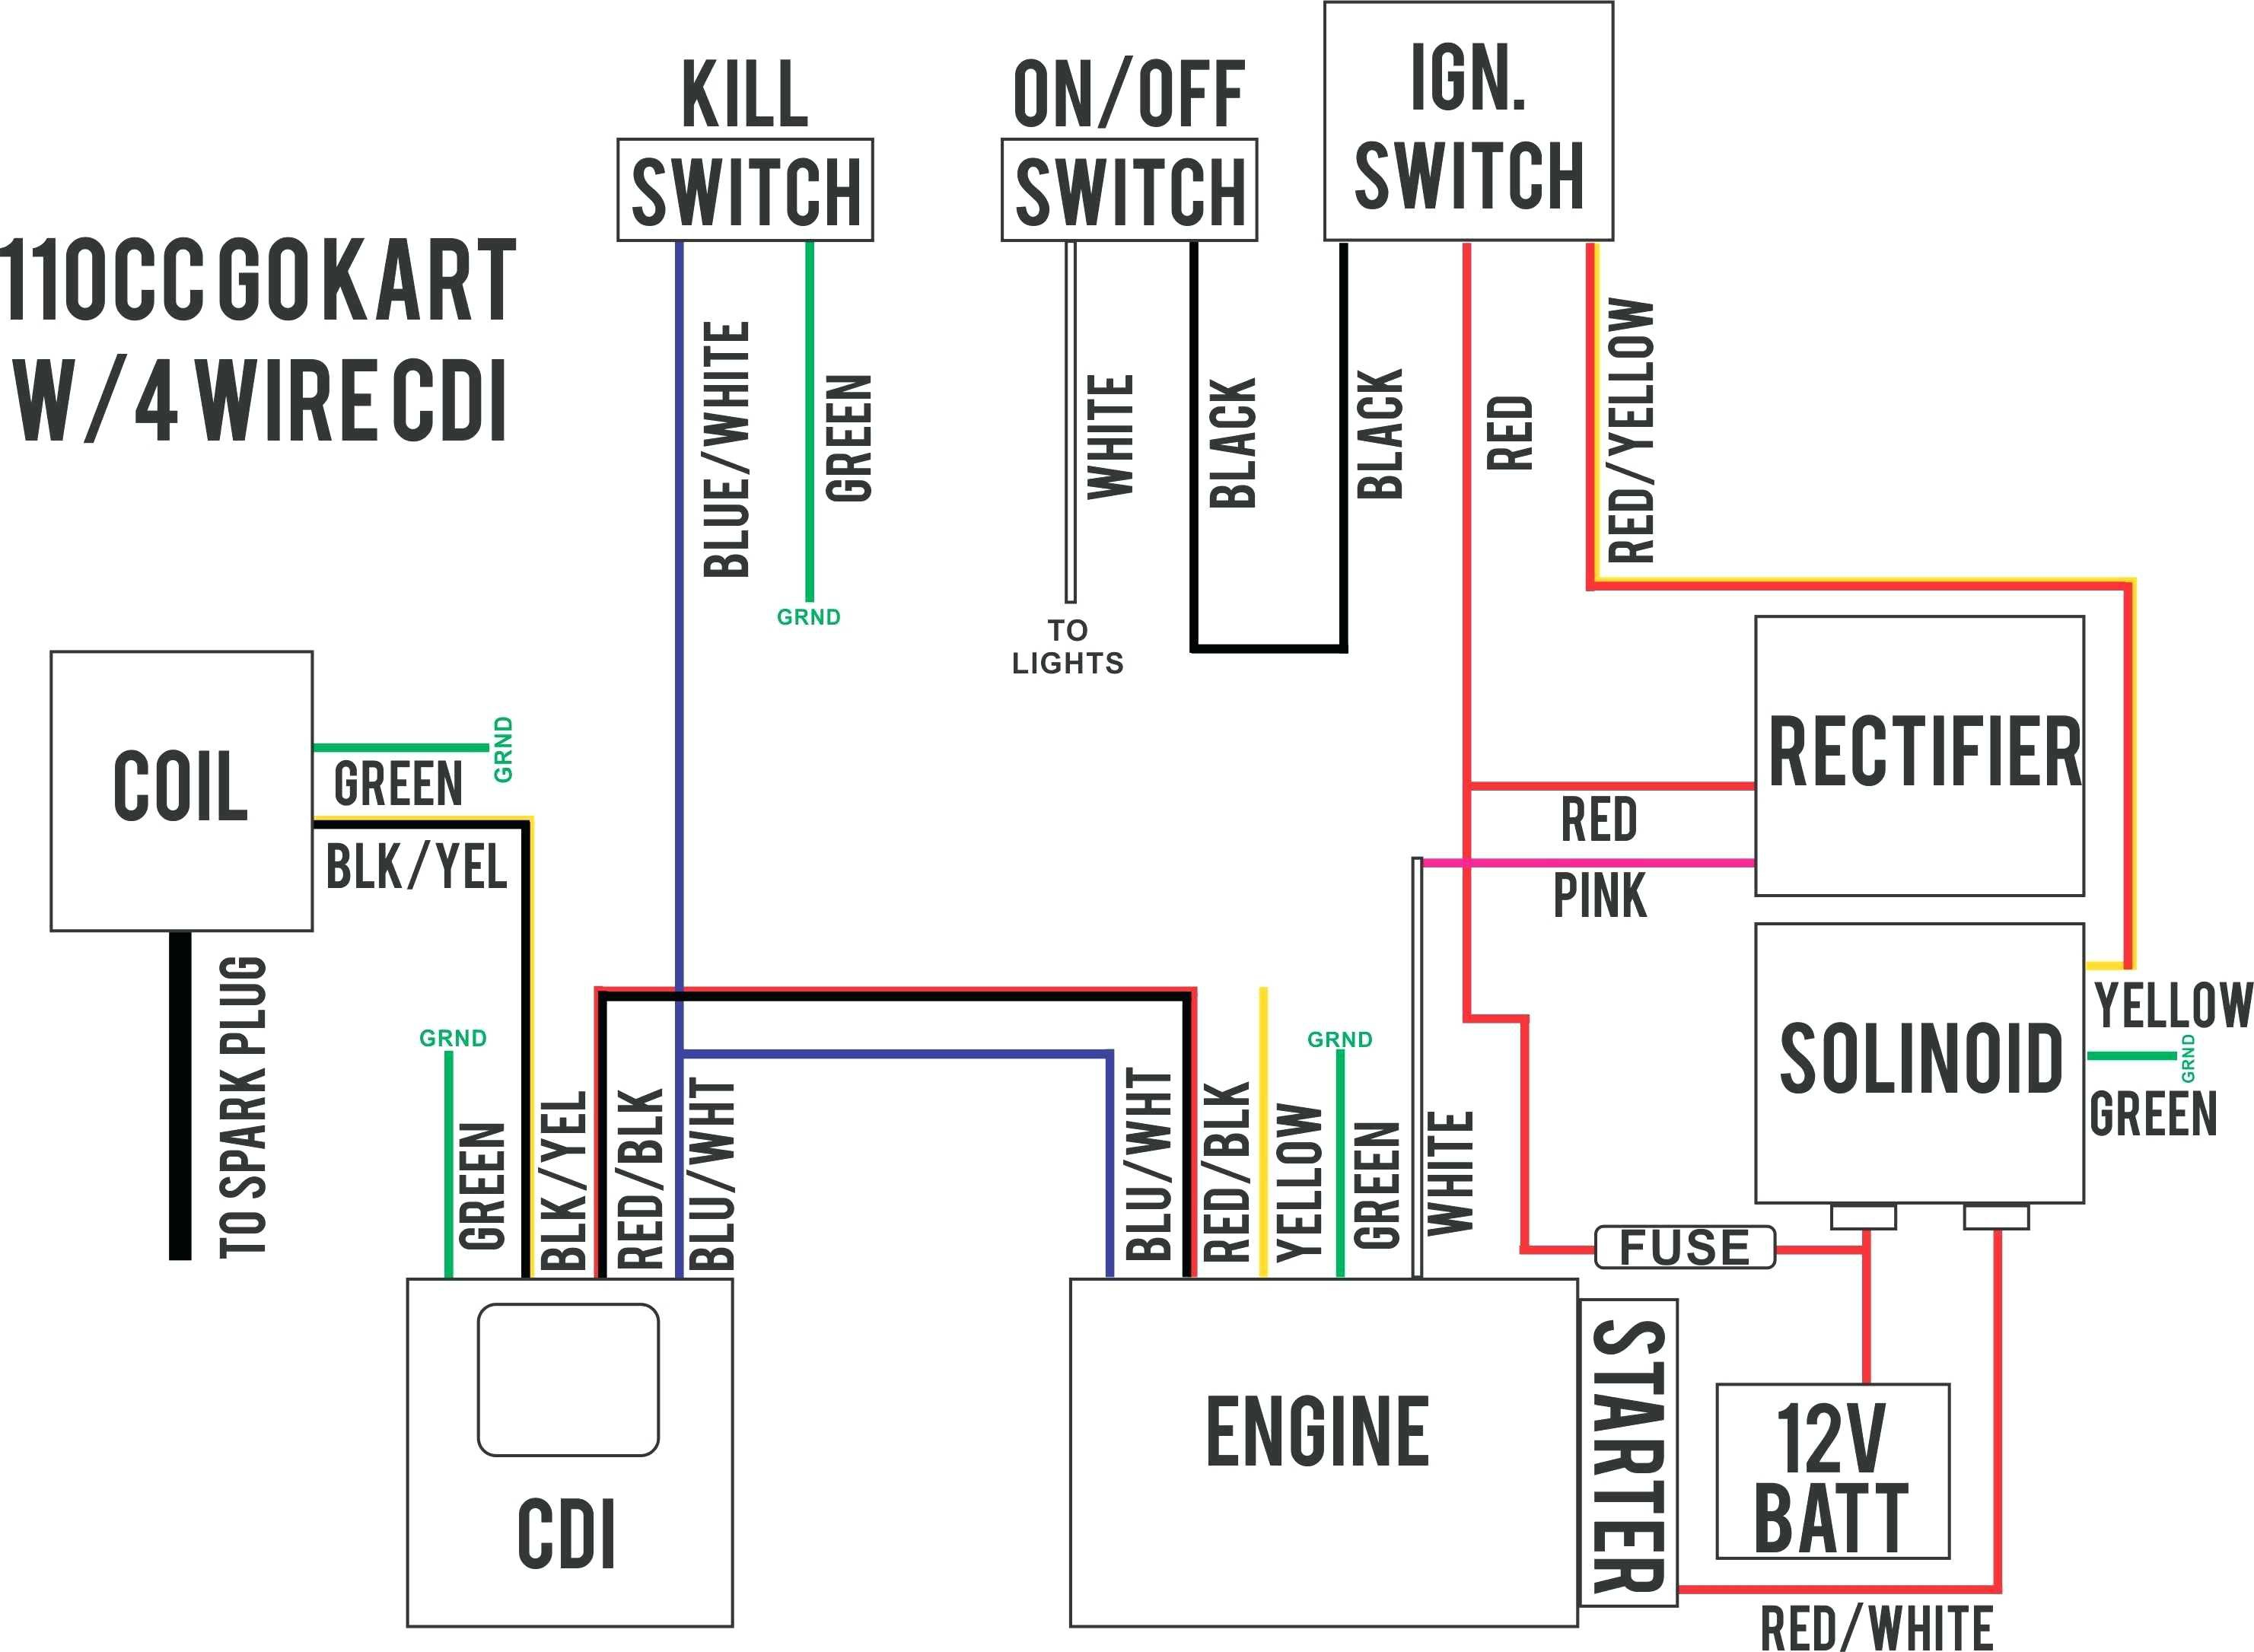 Remote Starter Wiring Diagram from wholefoodsonabudget.com